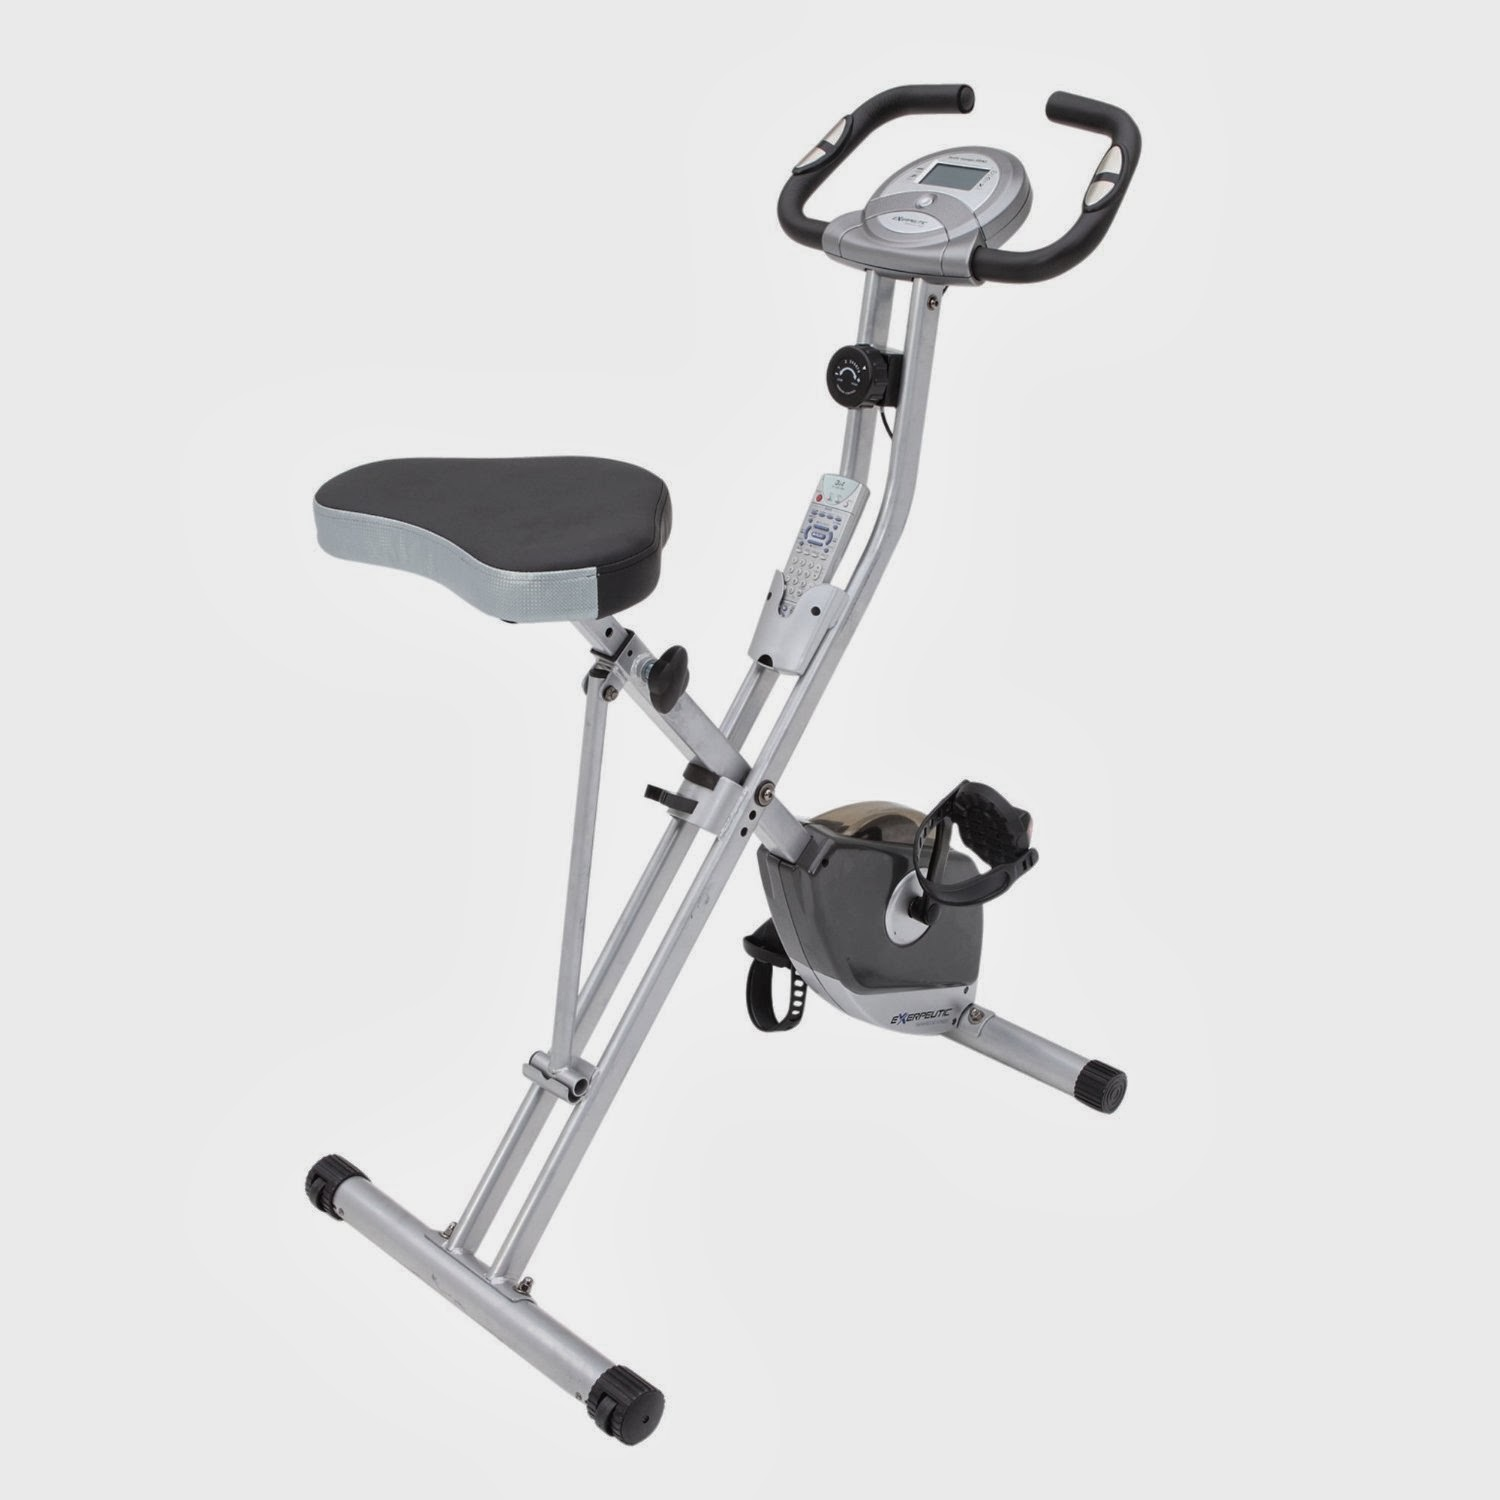 Buy the high rated, low priced Exerpeutic Folding Magnetic Upright Exercise Bike with Pulse, amazing value, packed with features, for all ages and fitness levels